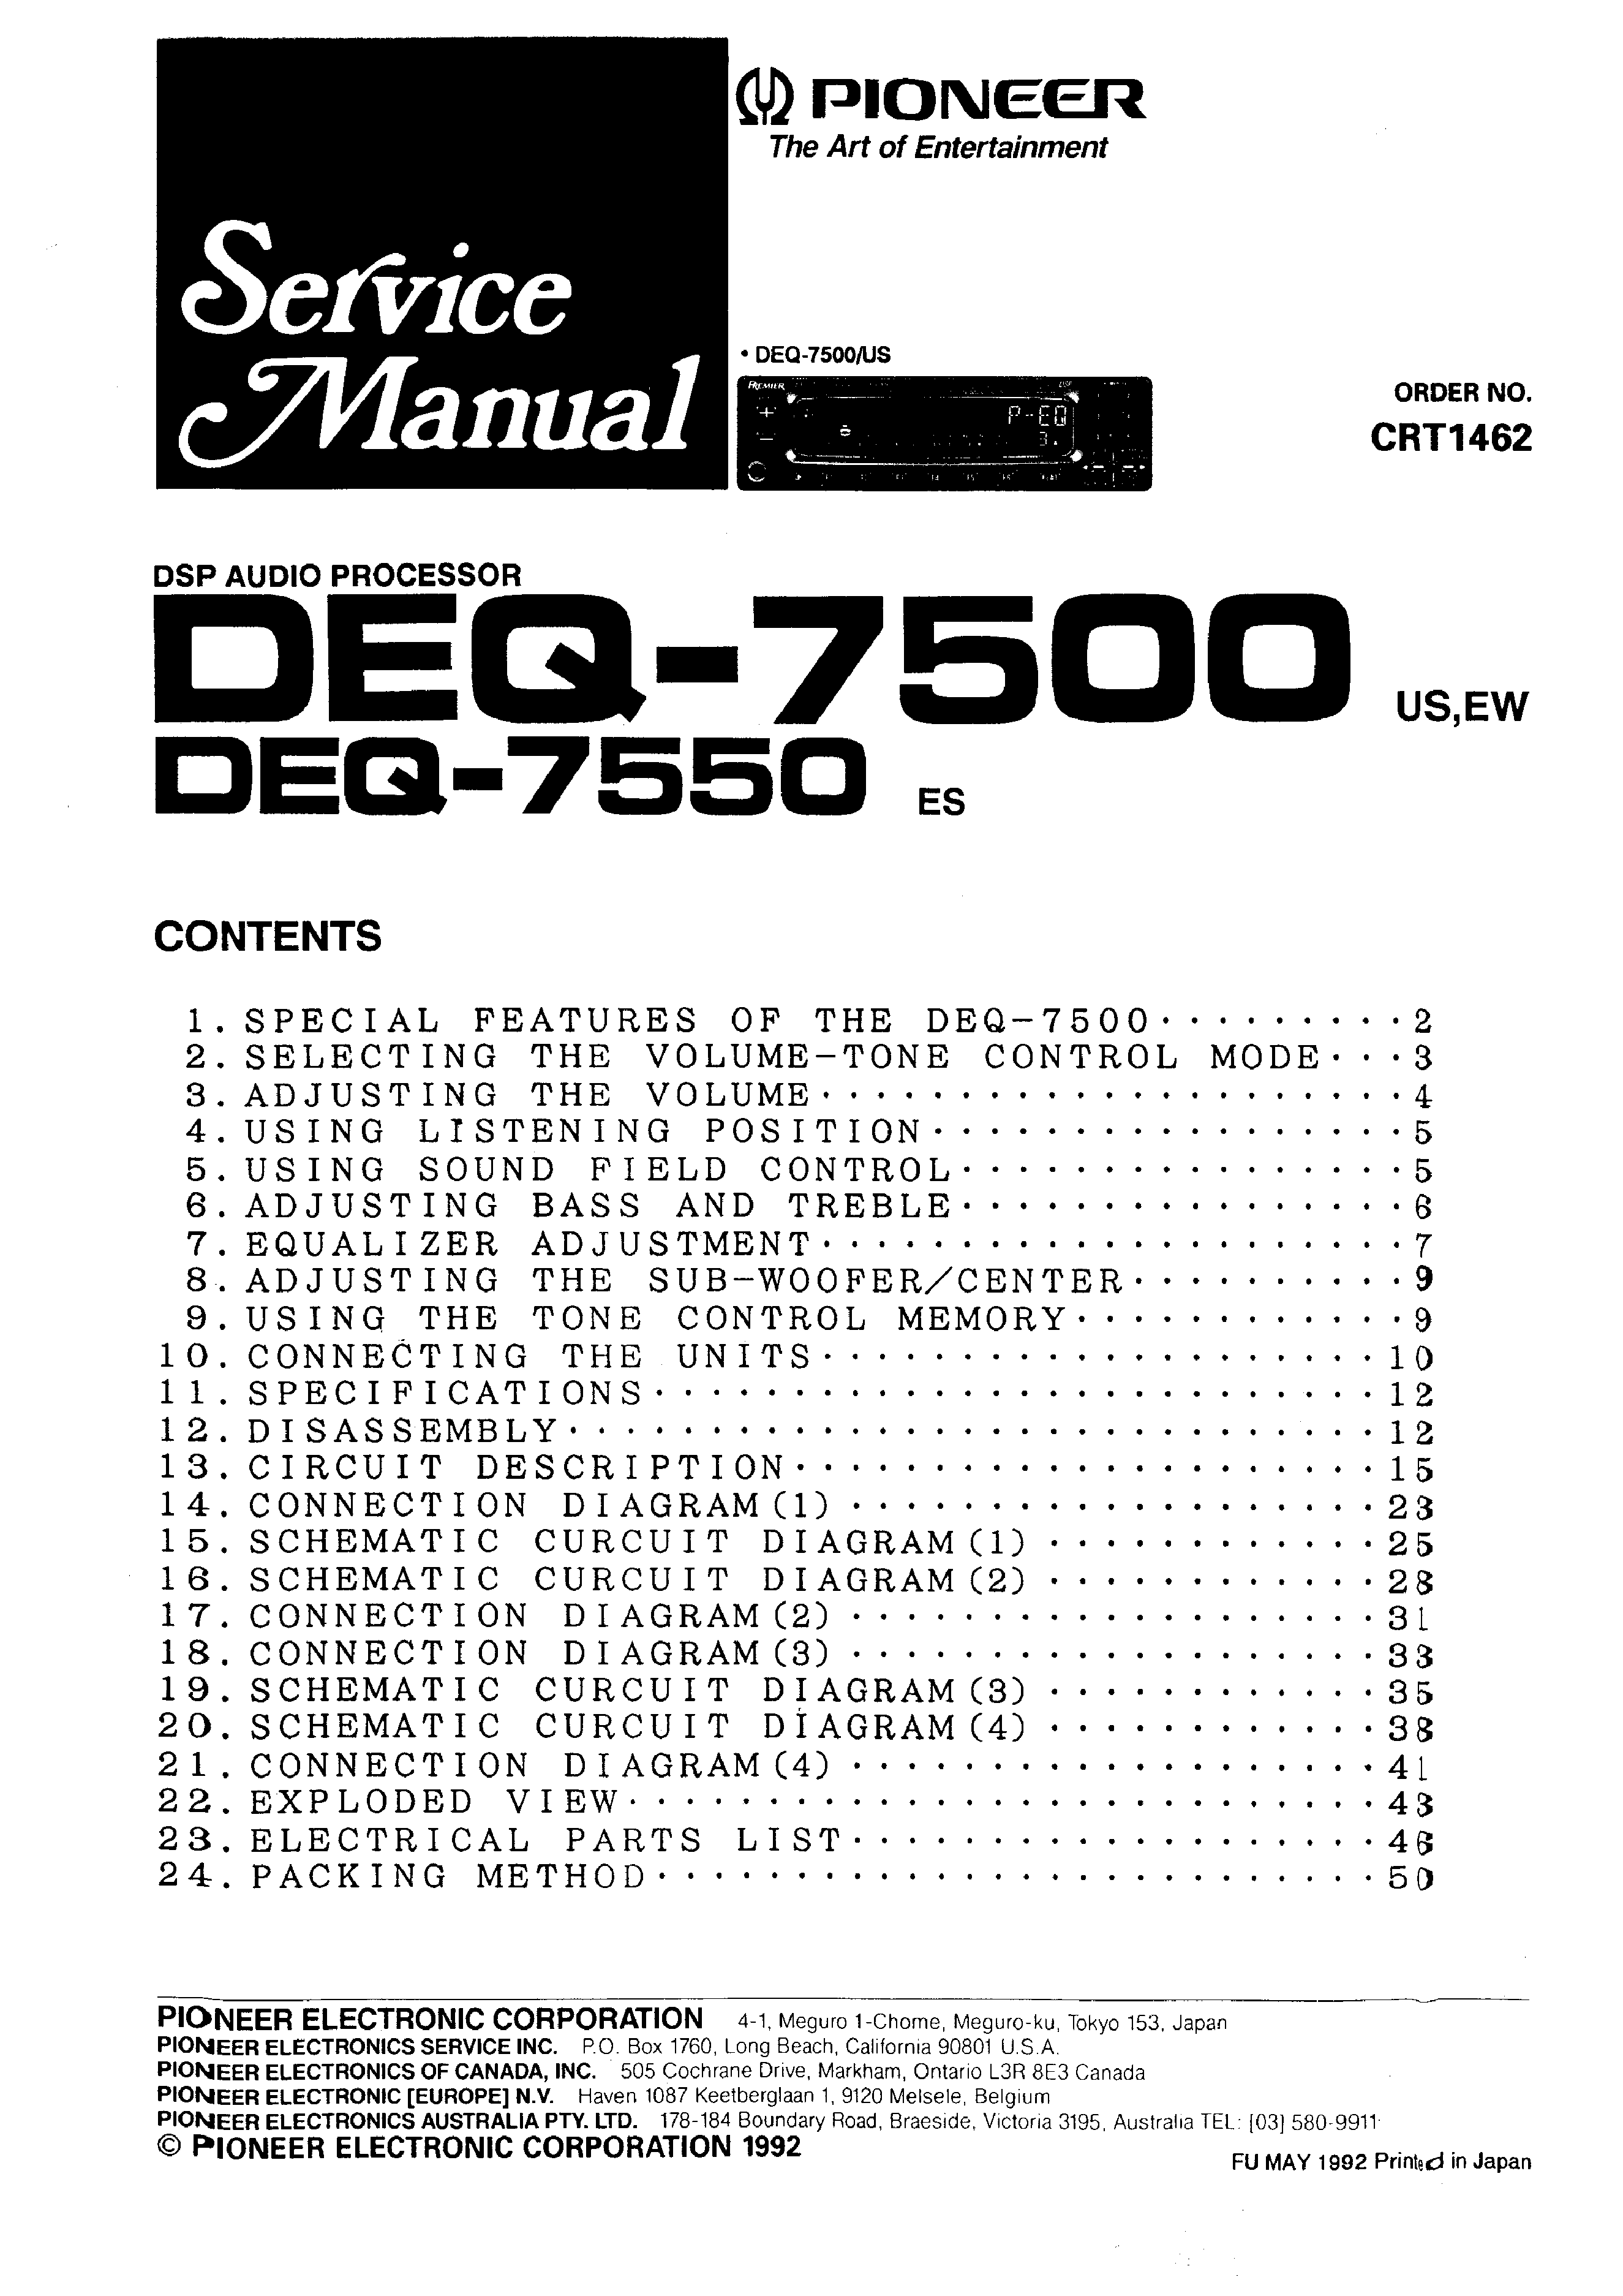 pioneer deq service manual immediate background image